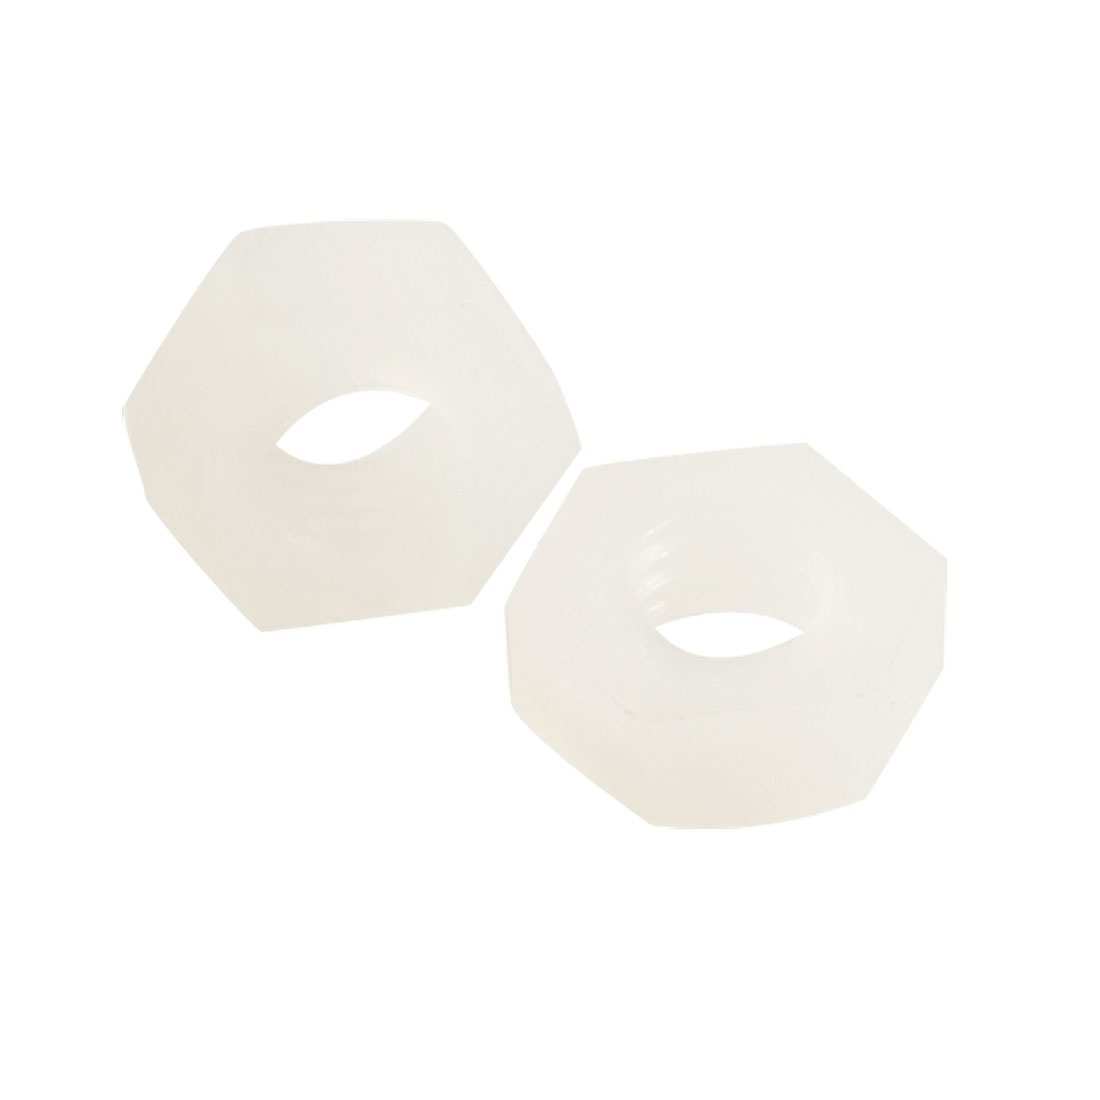 "1/8"" Female Thread Plastic Hexagonal Hex Screw Nut White 20 Pcs"